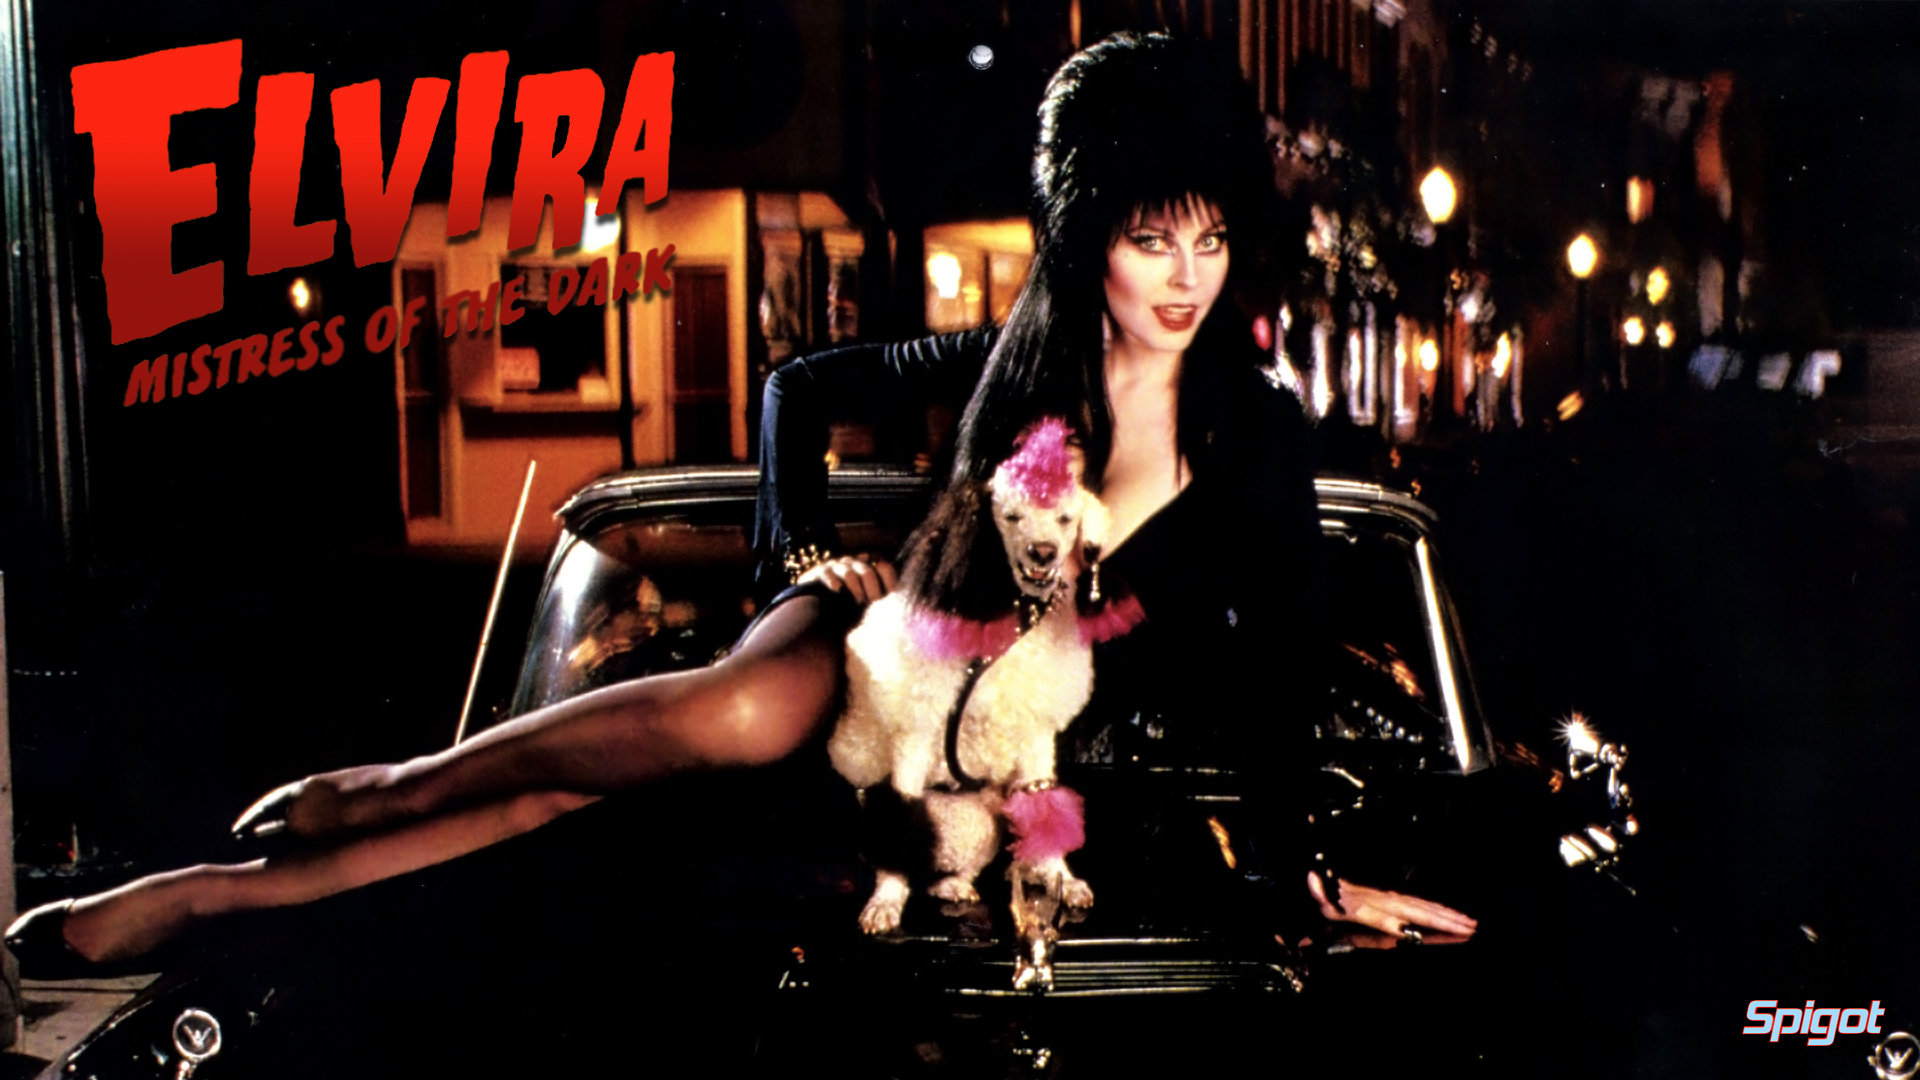 elvira desktop wallpaper